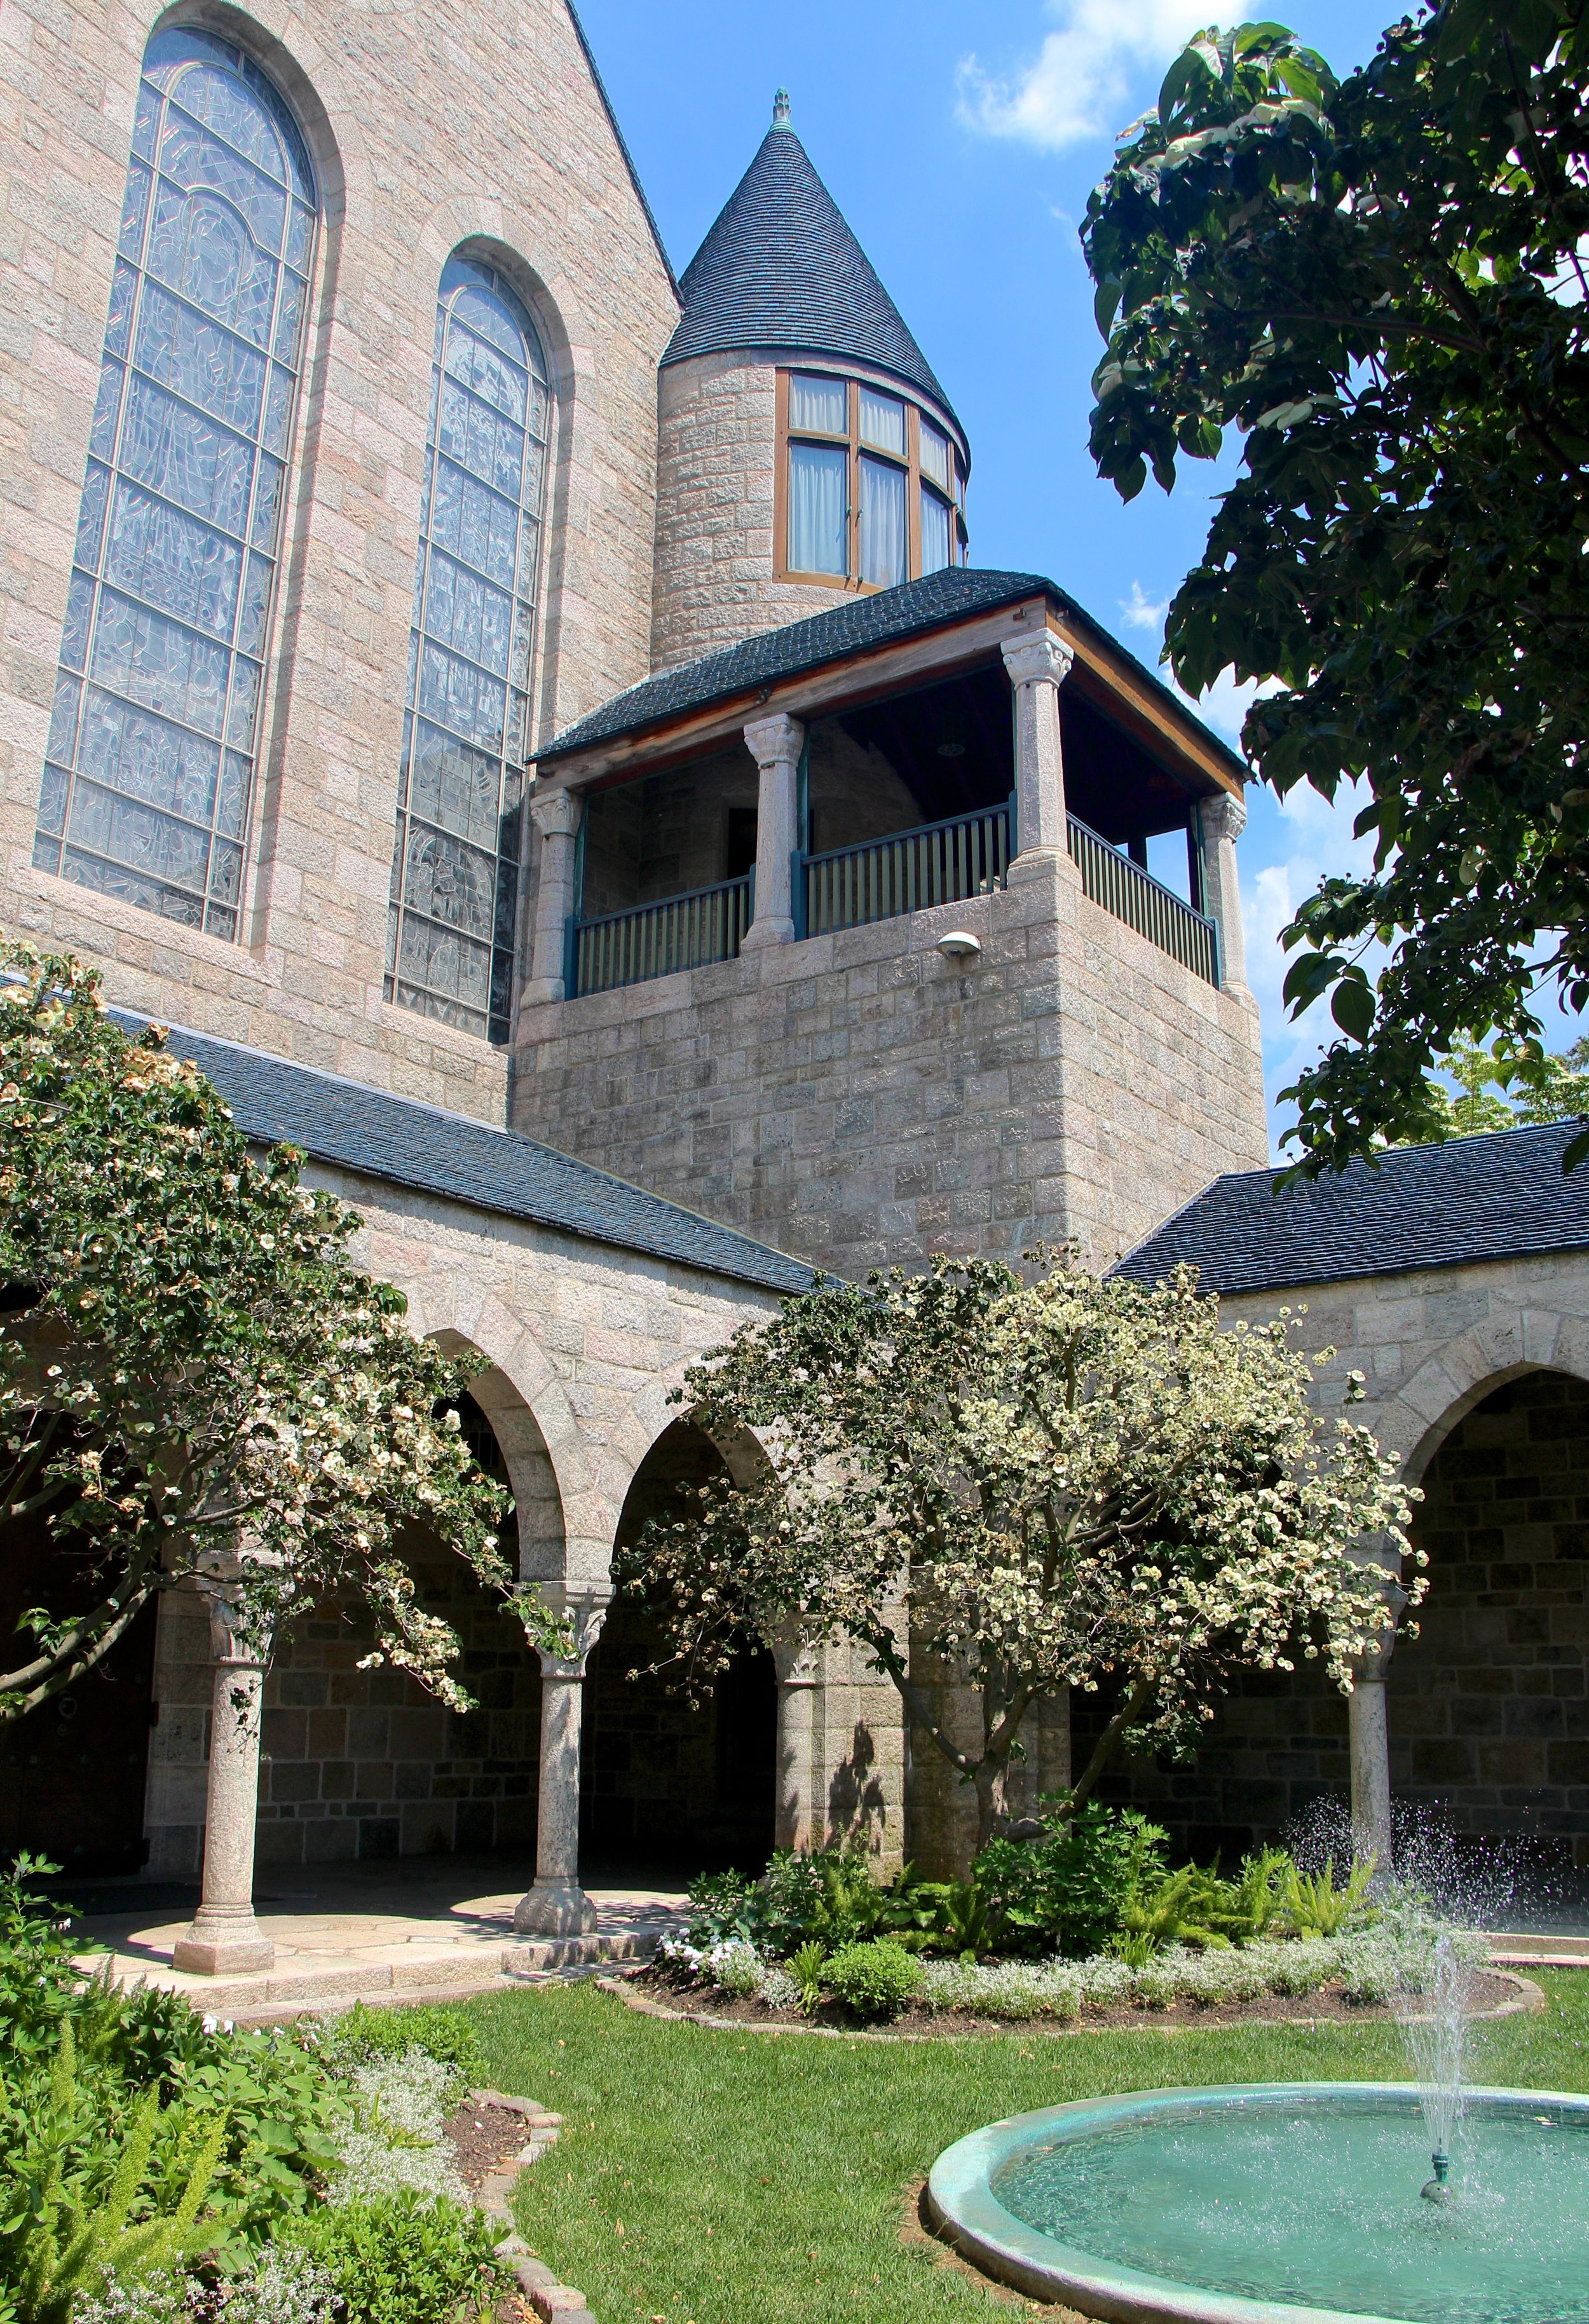 Figure 9: The southeast corner of the cloister. The covered porch above the cloister roof is a sleeping porch attached to the master bedroom and bath.